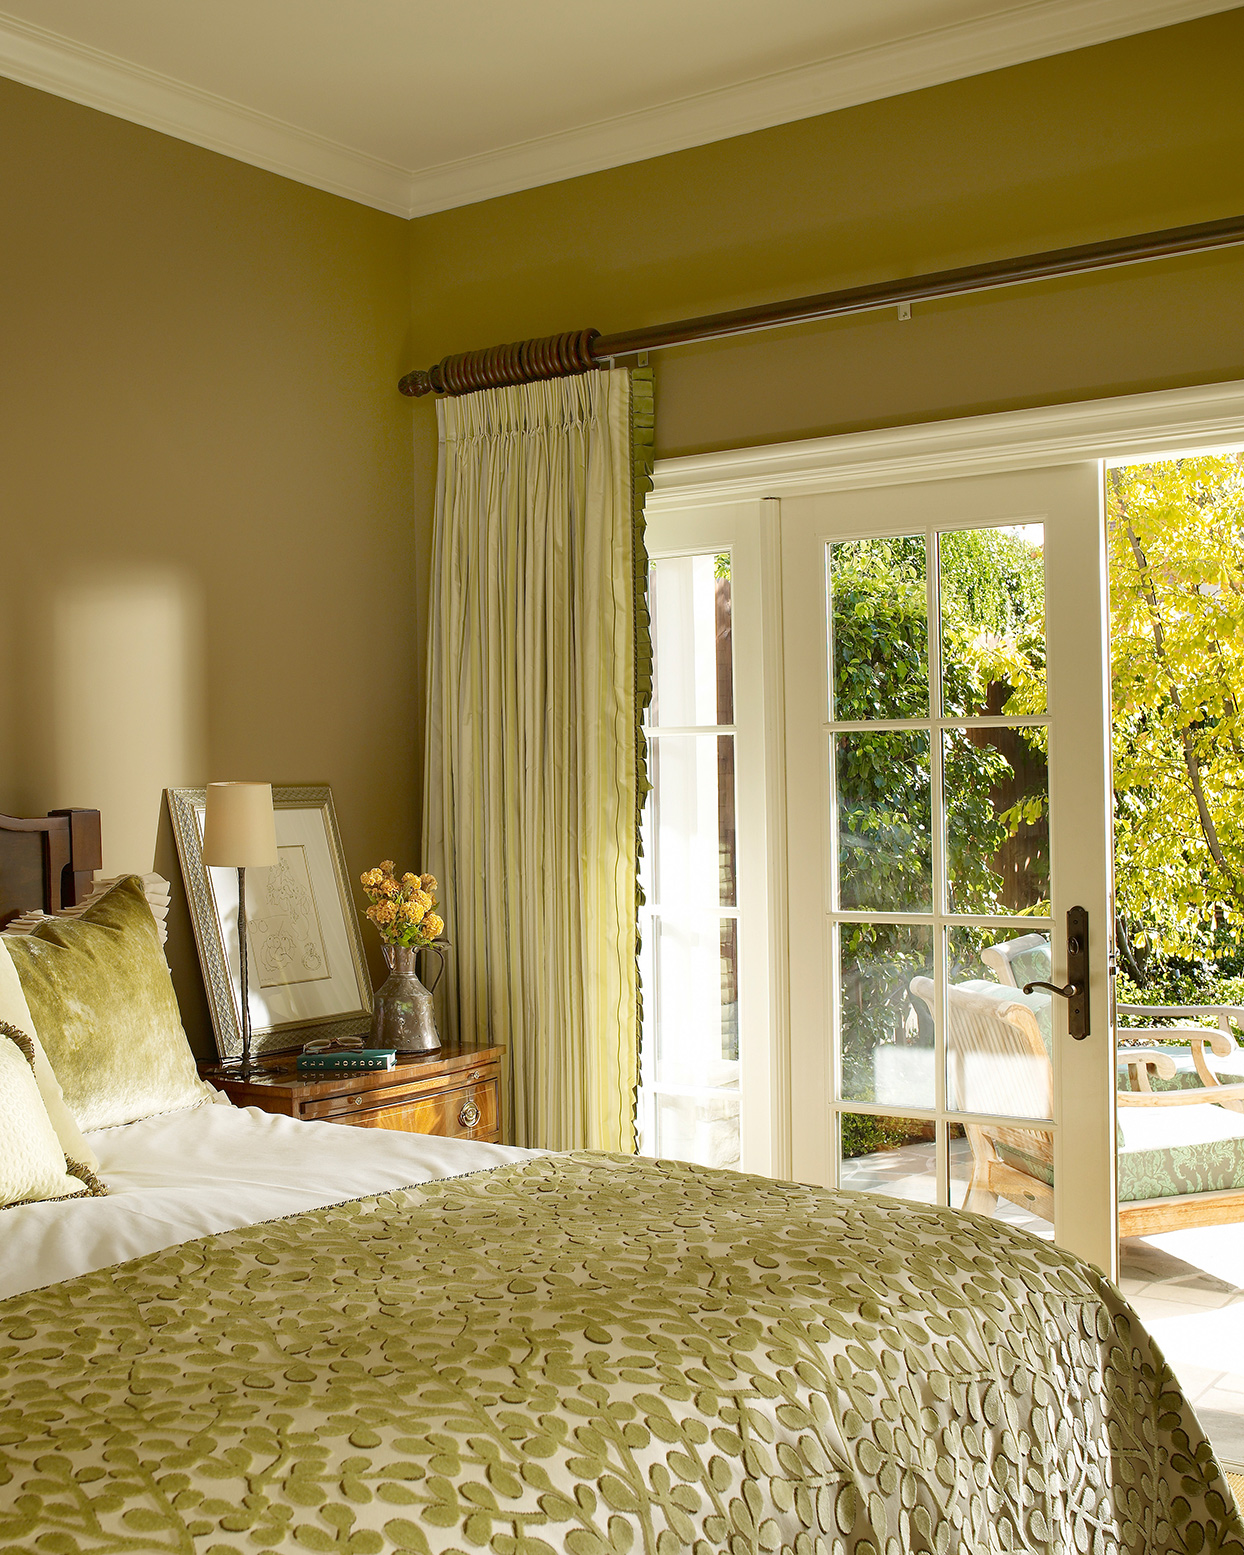 yellow-green toned bedroom with french doors opening to sunny patio